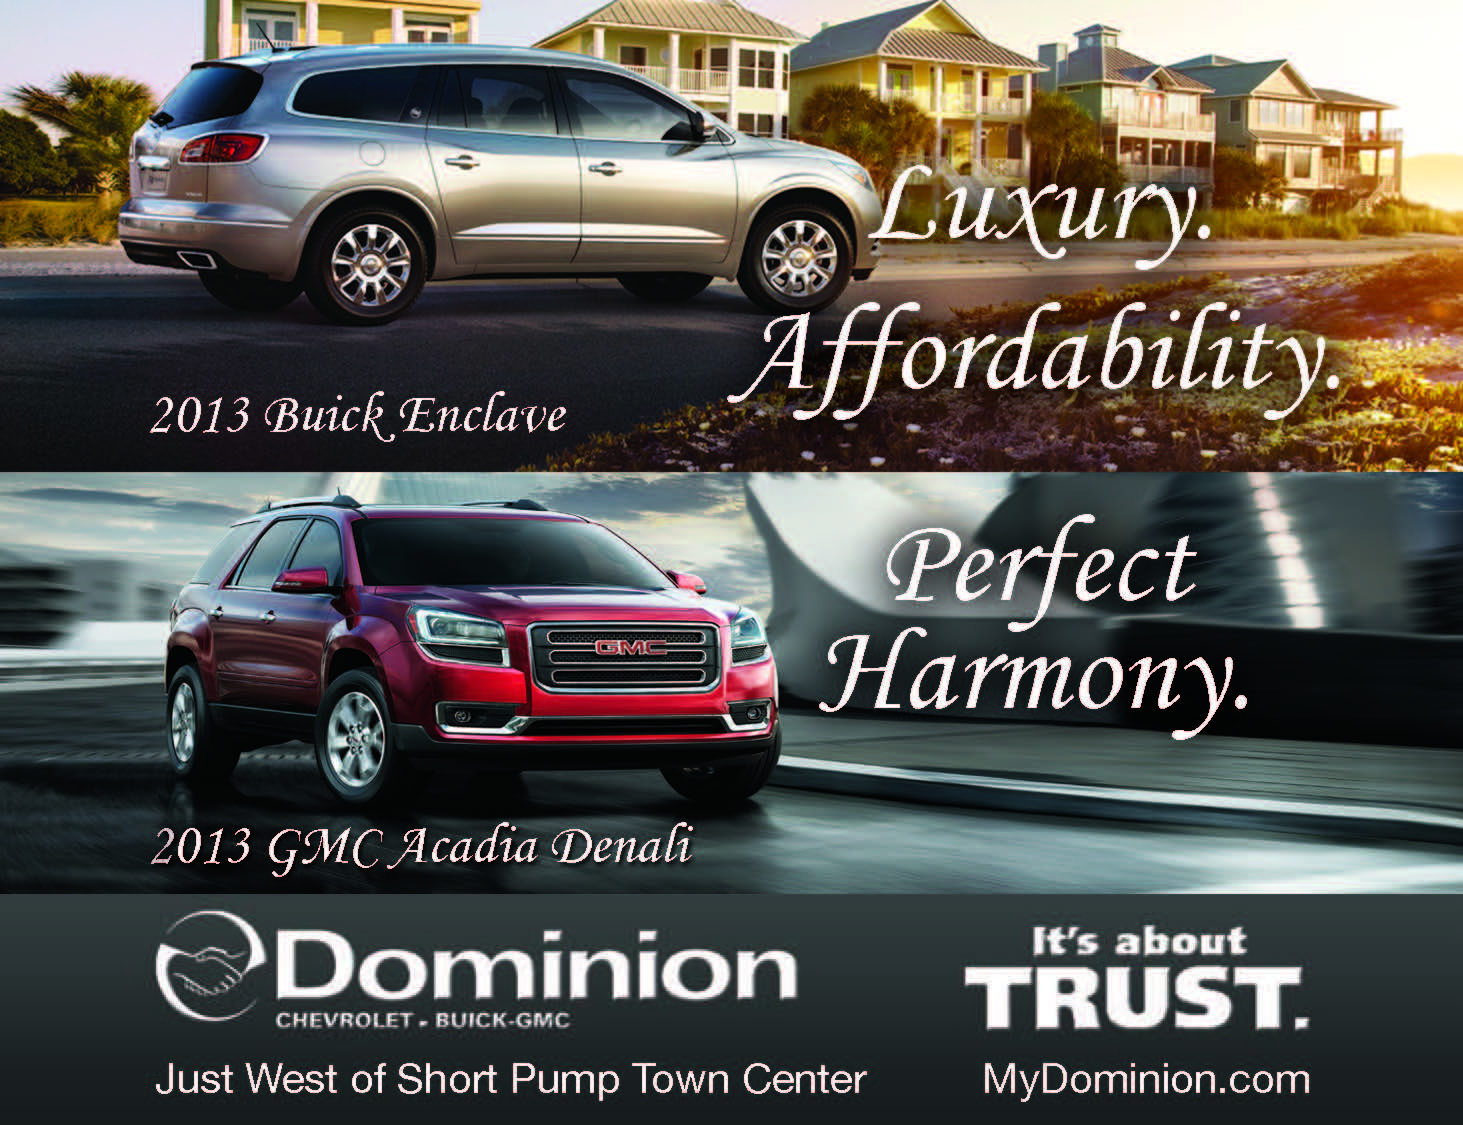 Dominion Symphony AD Photo 1